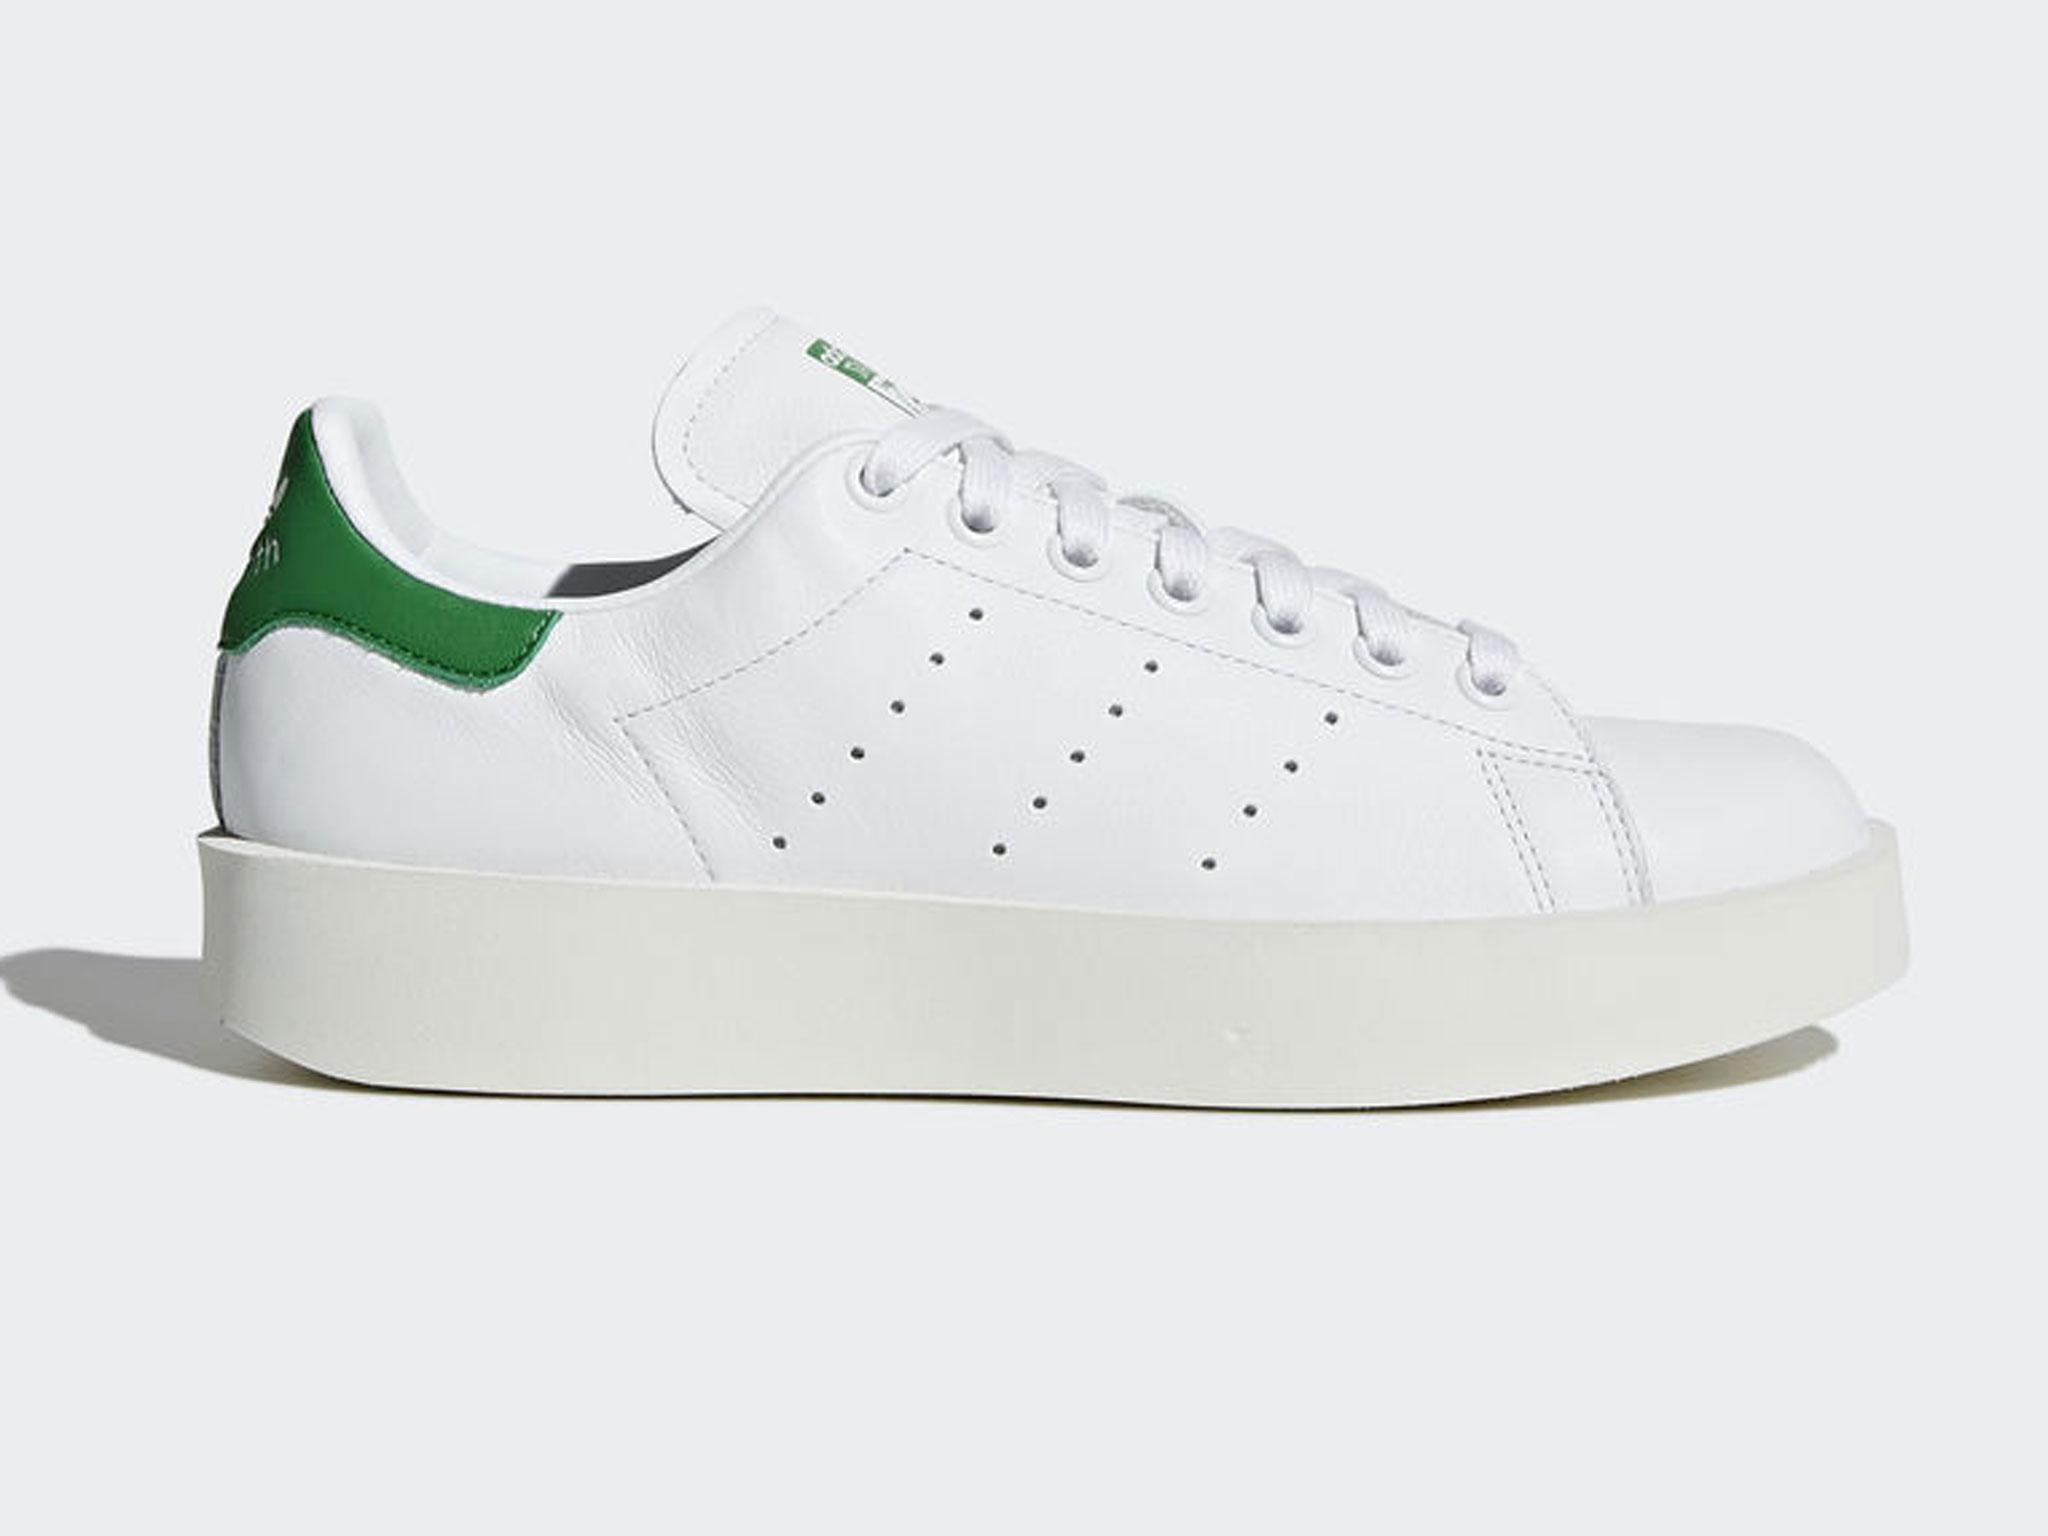 huge discount bebb2 22f9f ... clearance adidas stan smith bold shoes 84.95 adidas 2ced8 2d2fe ...